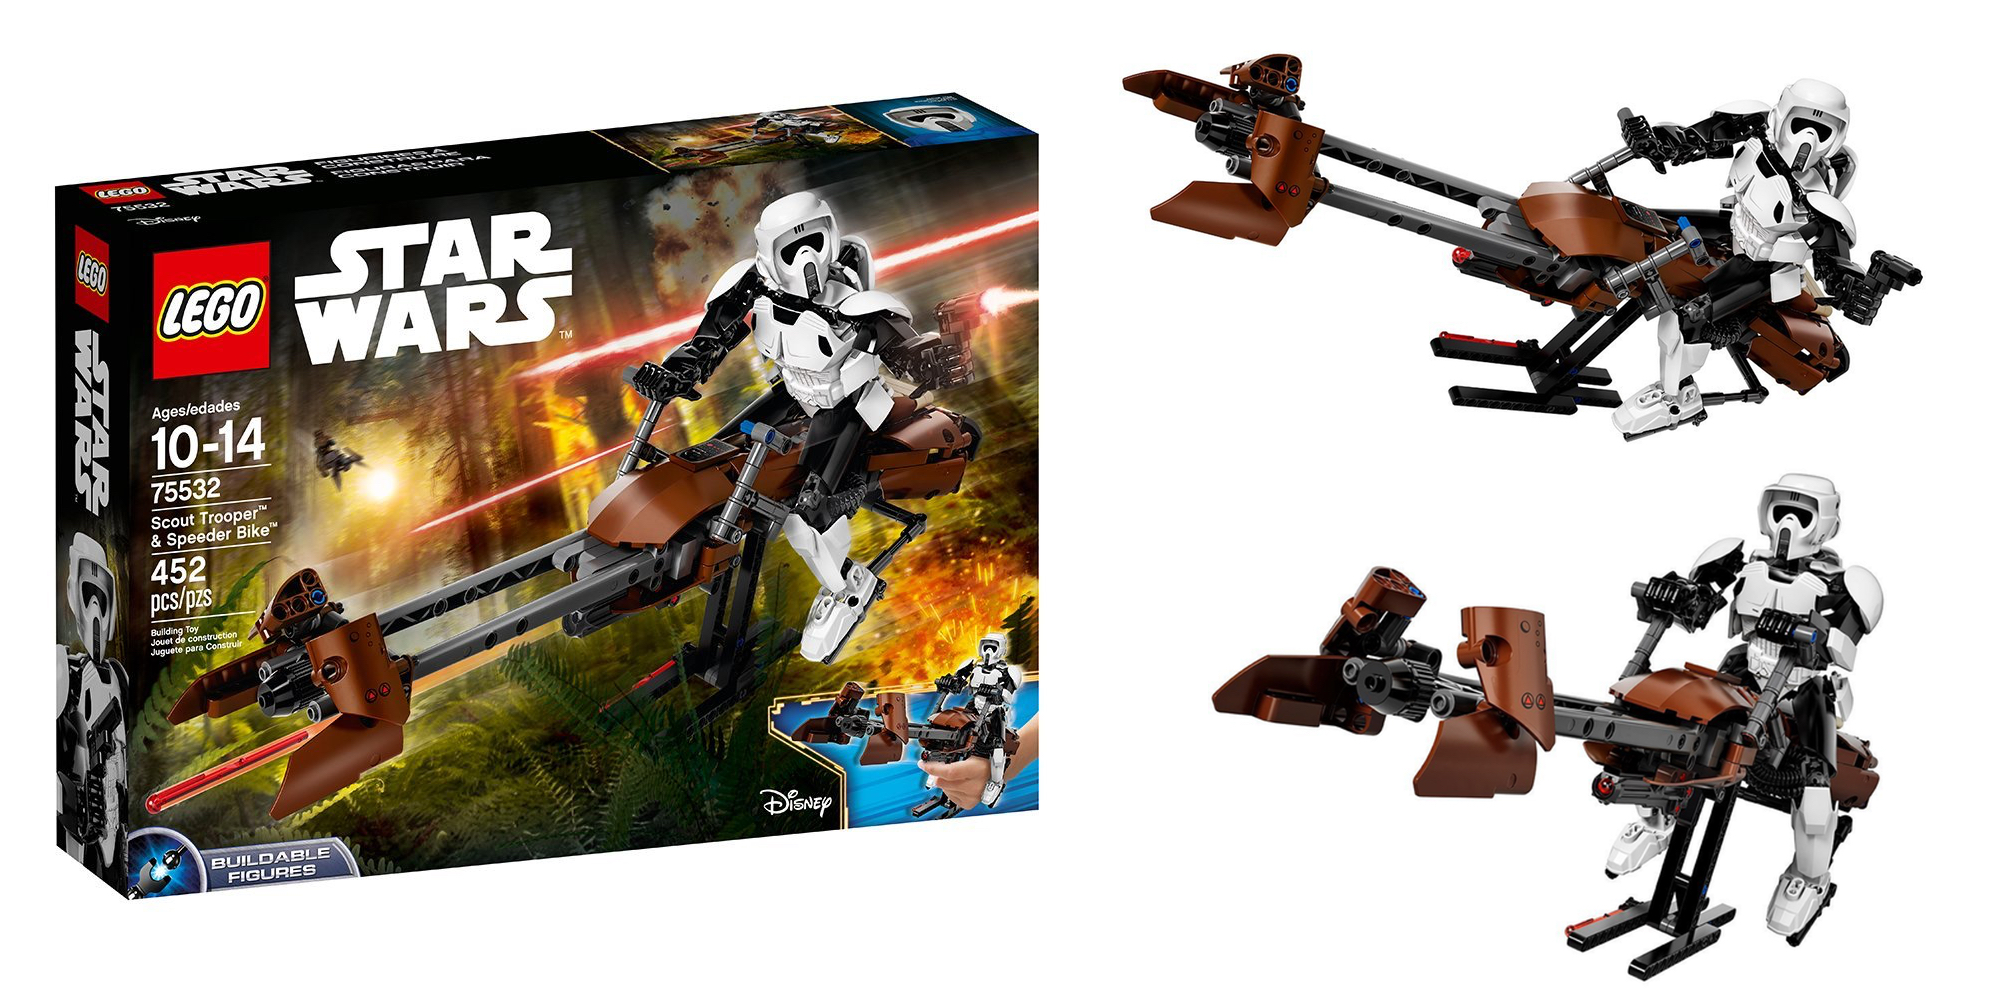 Stock up on LEGO kits at a discount: Star Wars, Minecraft, and more from $20